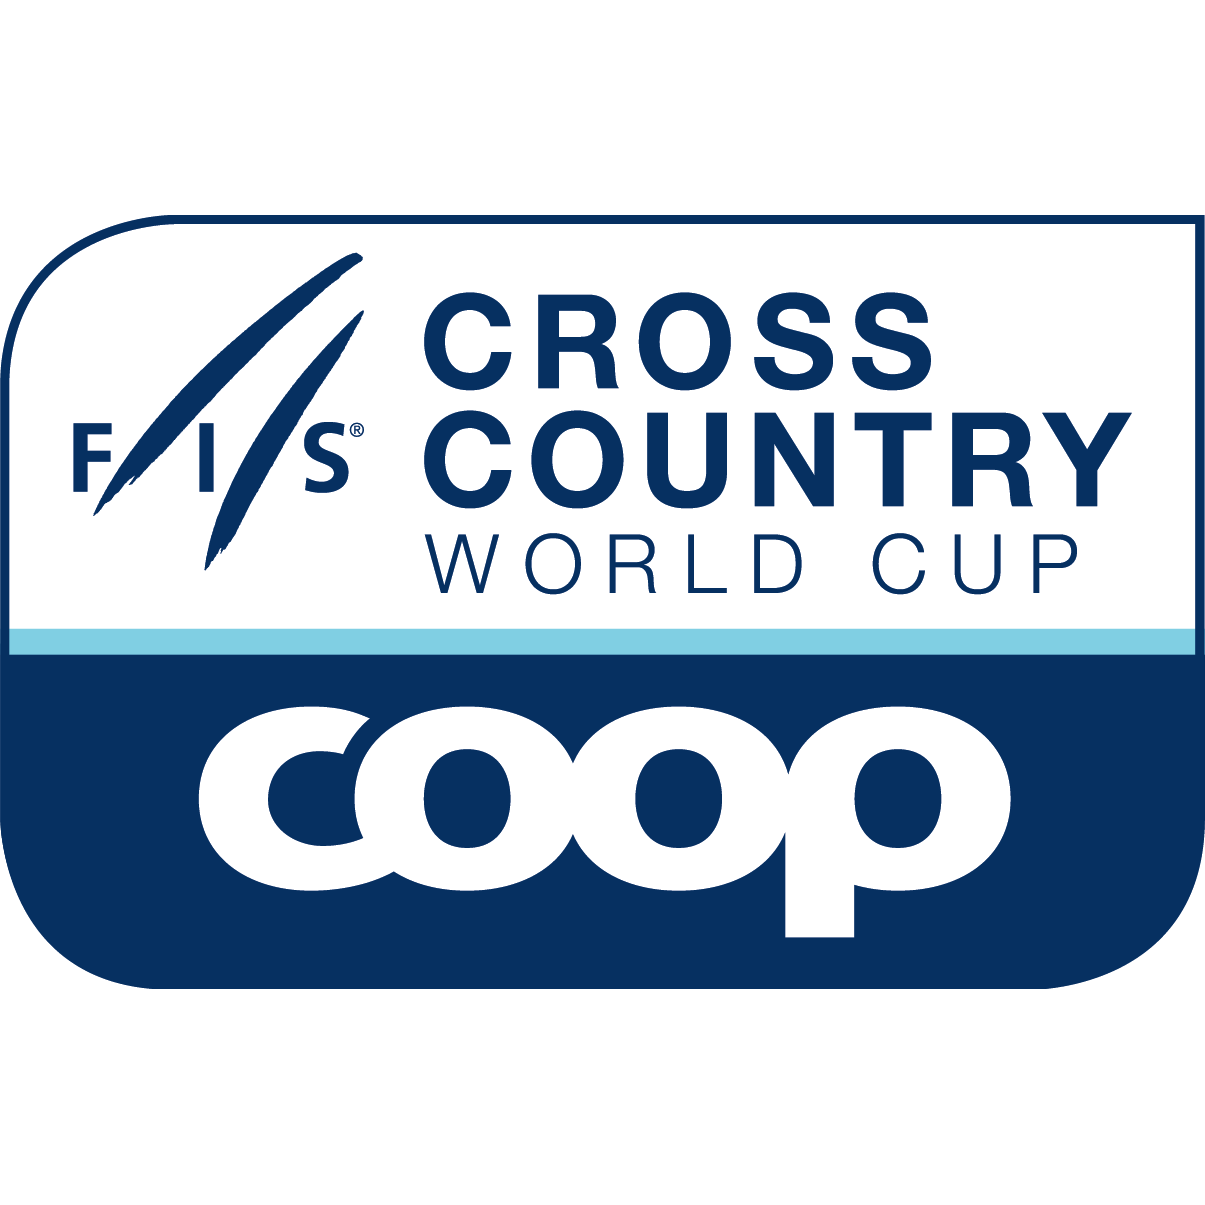 2015 FIS Cross Country World Cup - 3-Days Tour